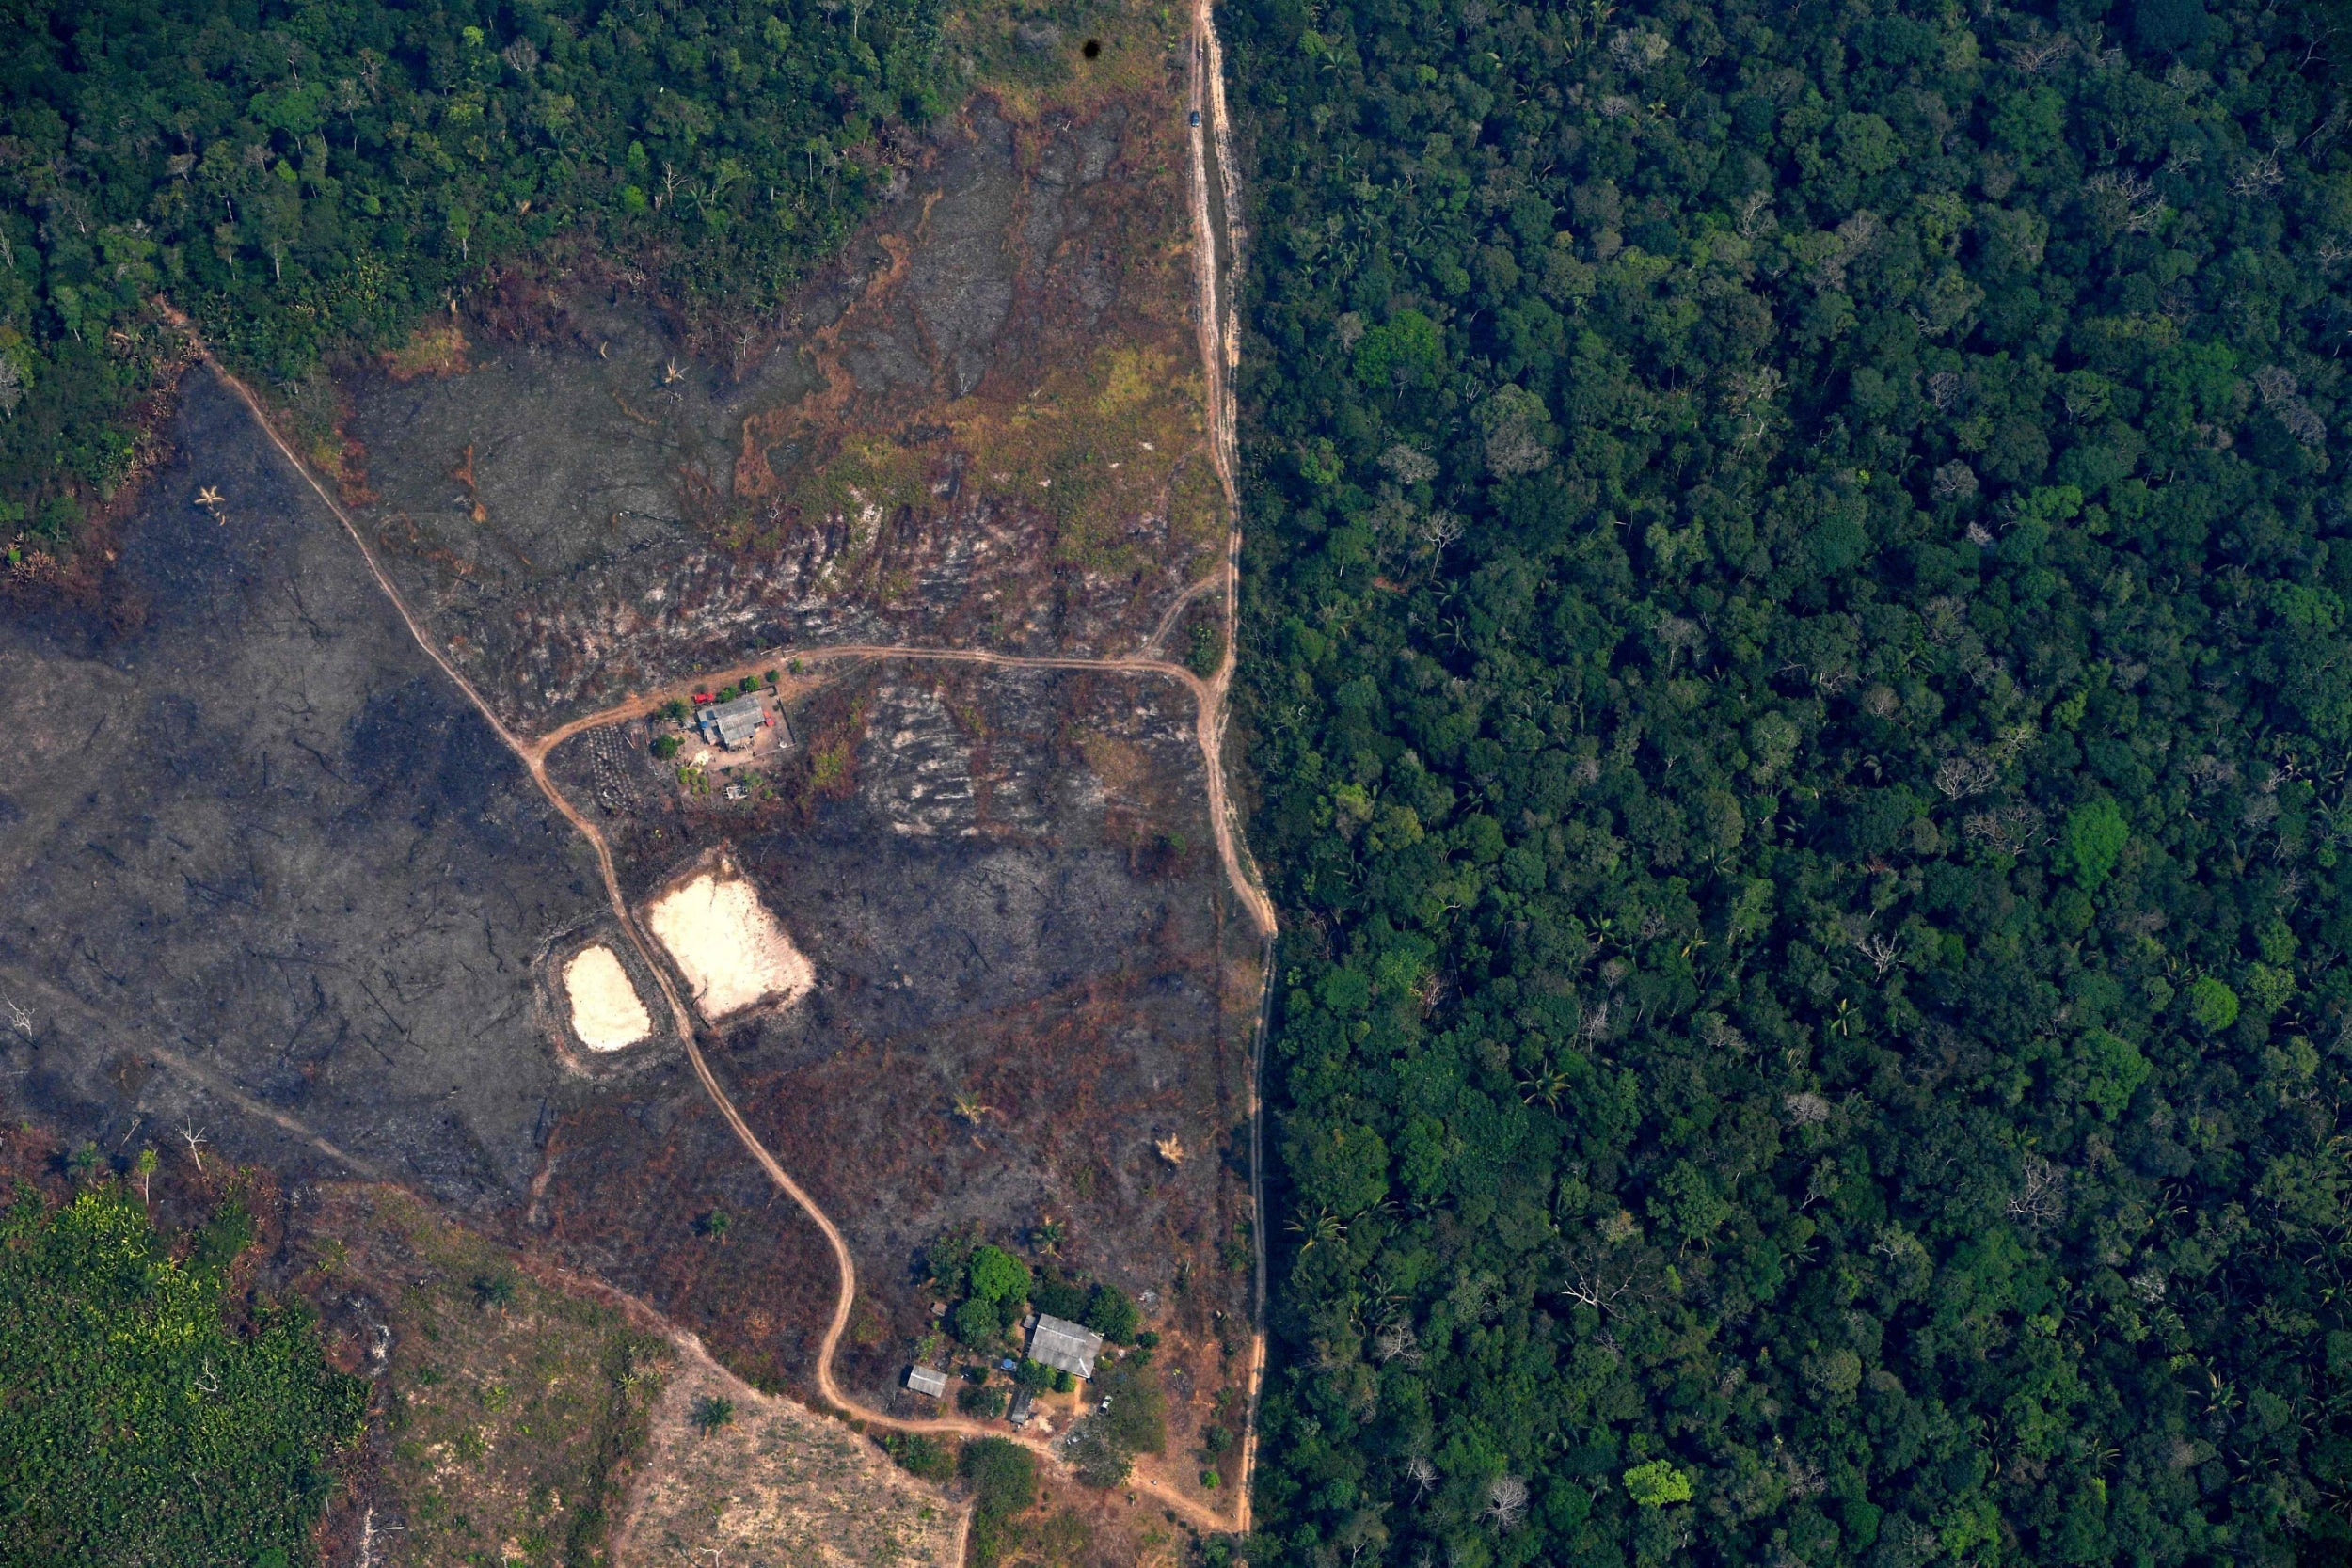 Football-pitch size patch of rainforest lost every six seconds in 2019